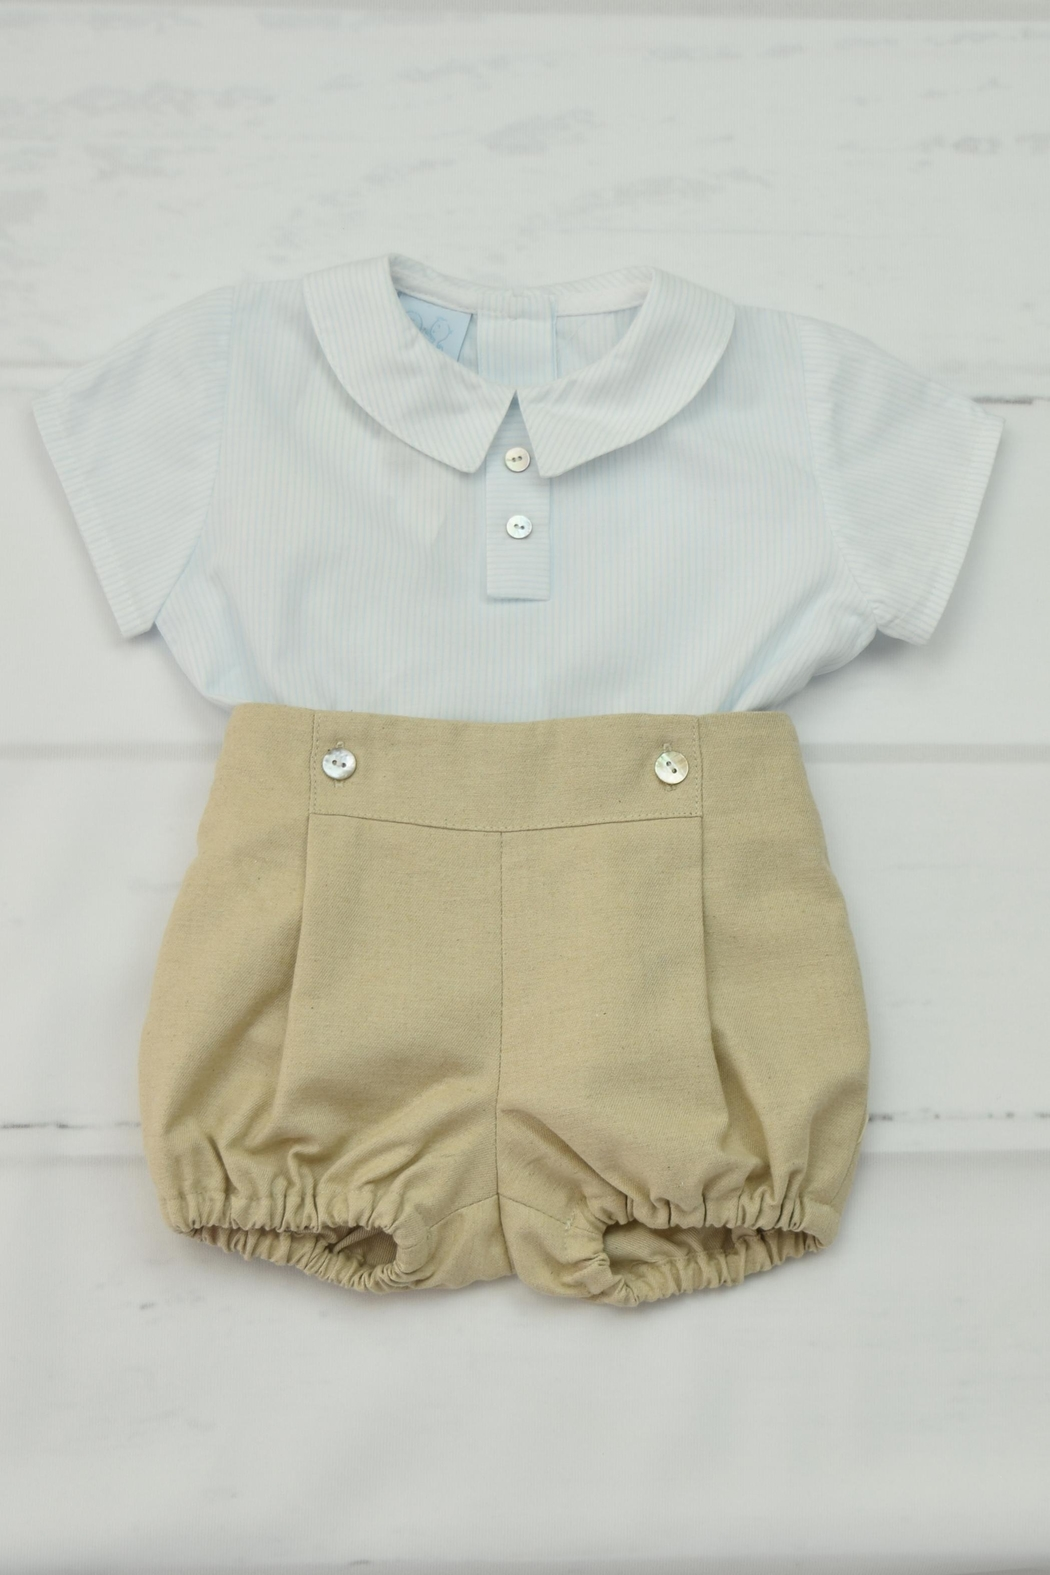 Granlei 1980 Blue & Beige Outfit - Main Image